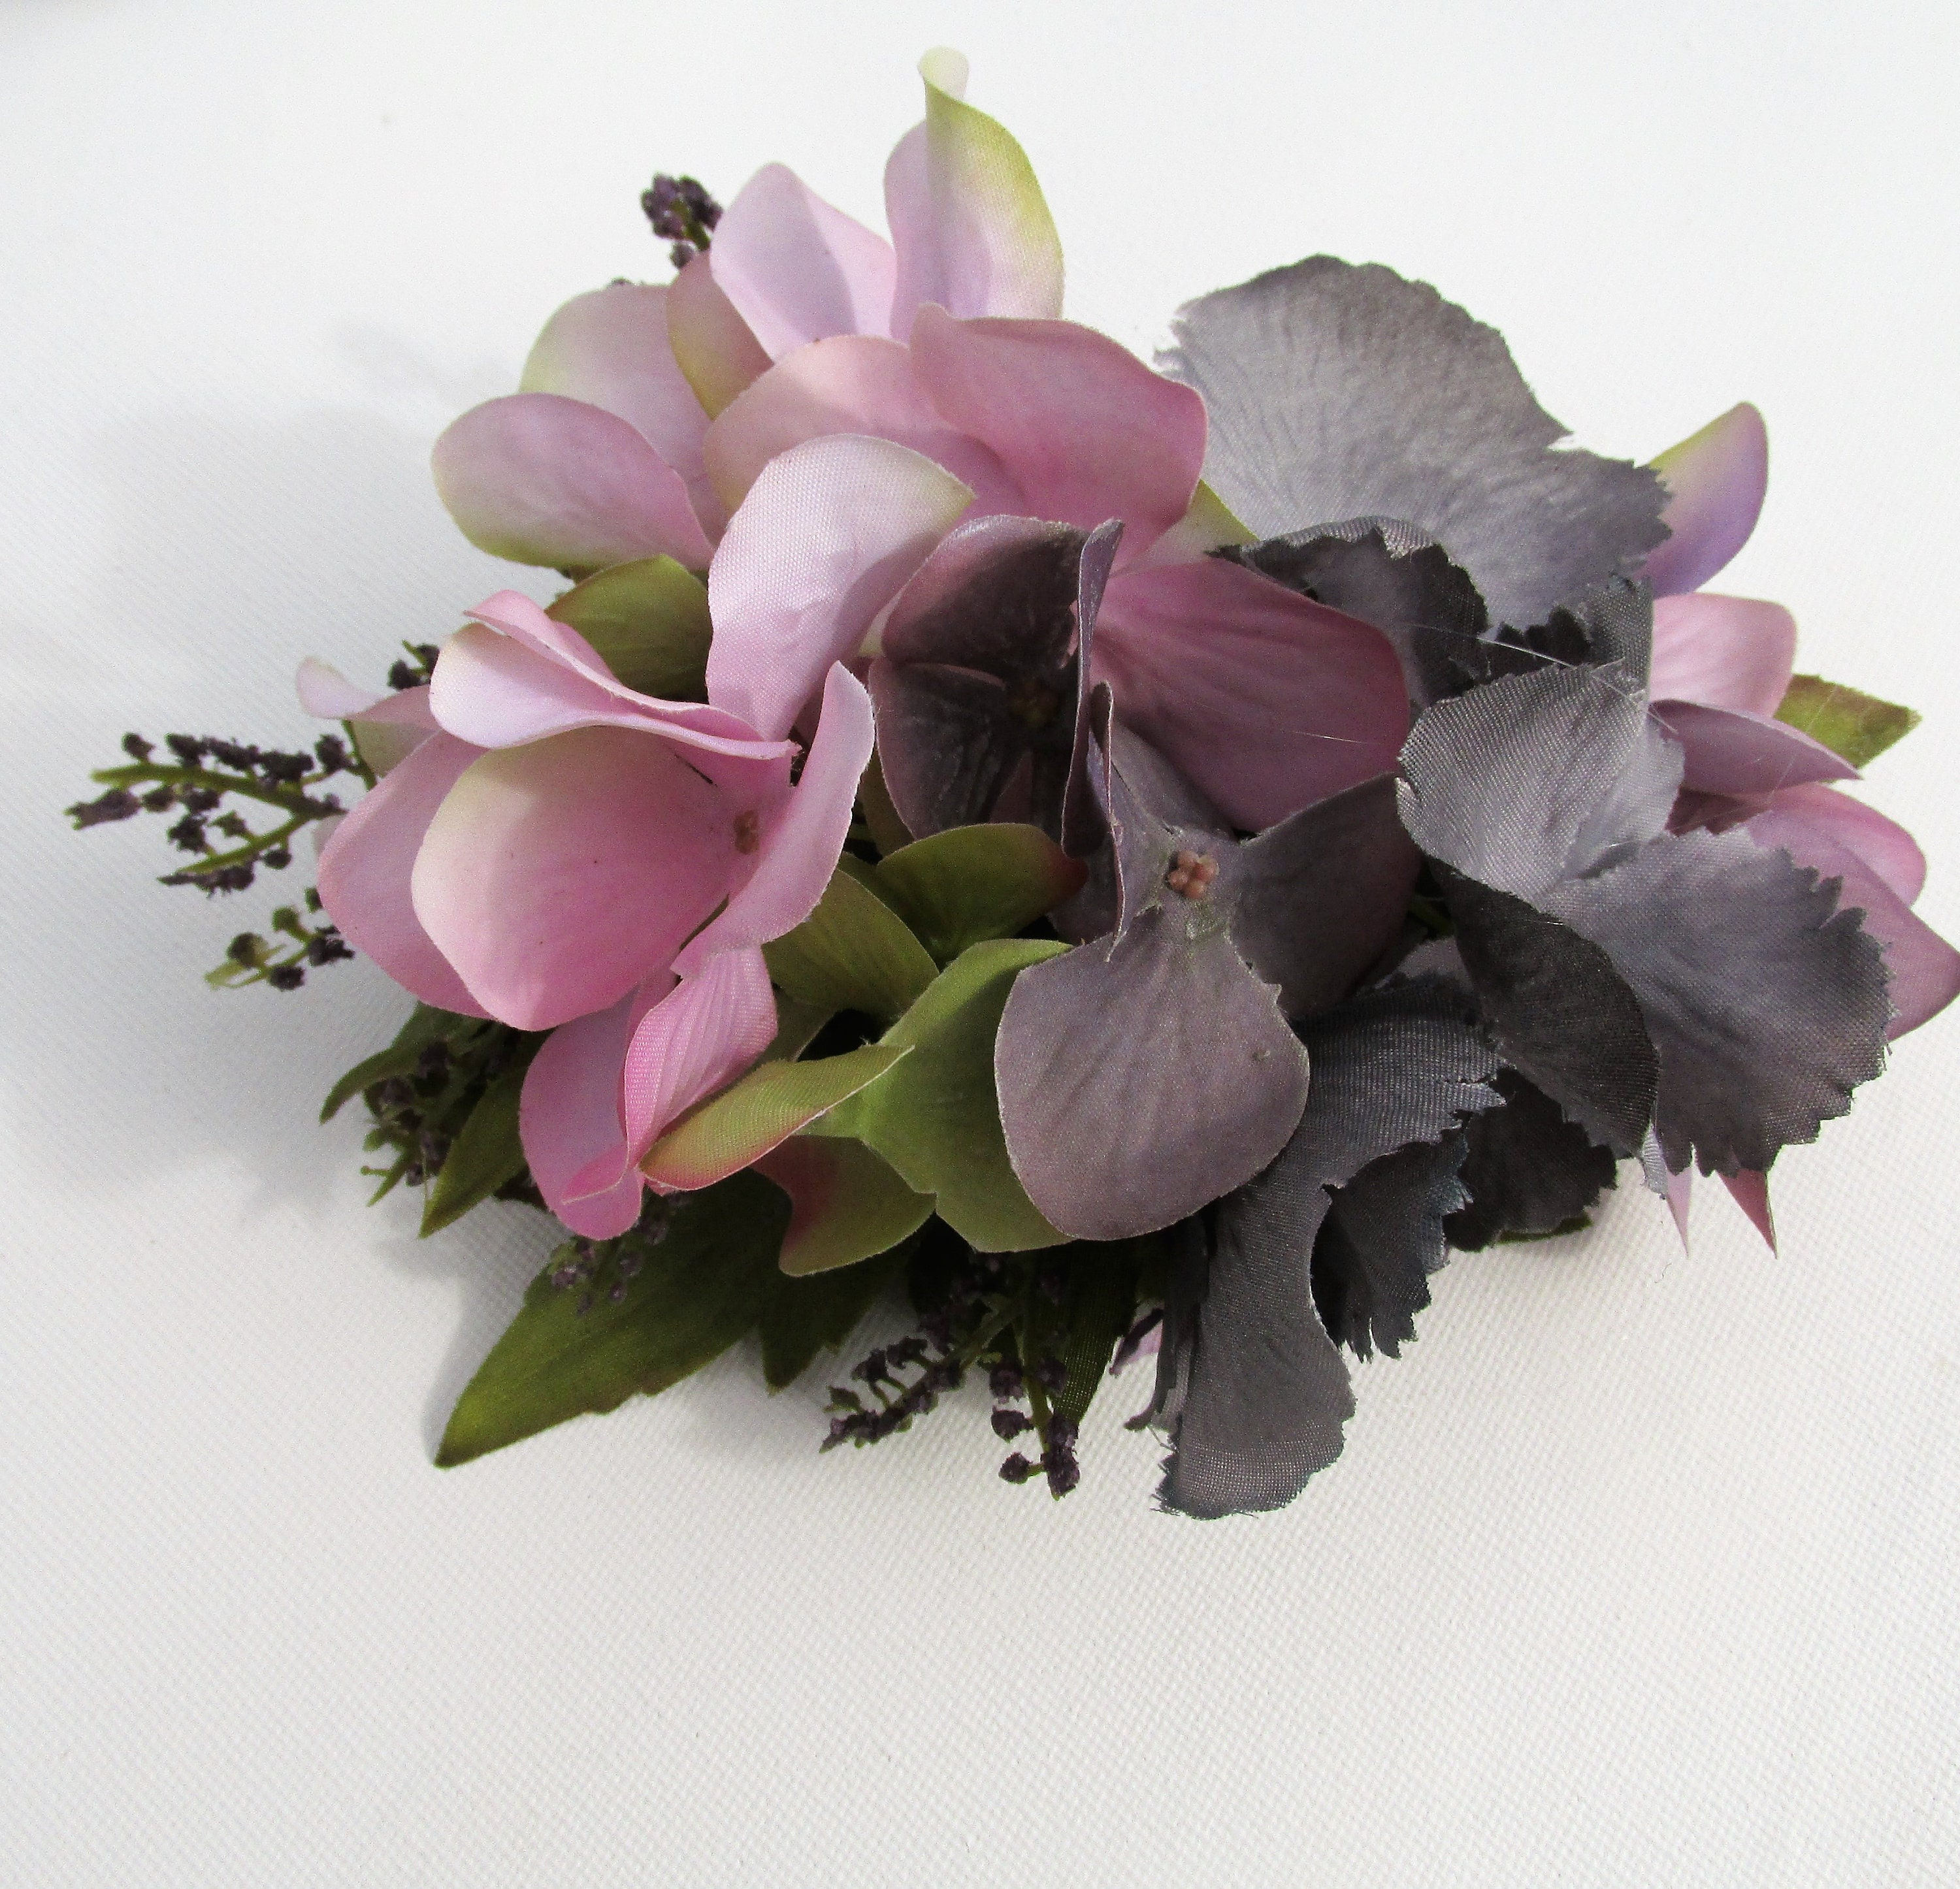 Wedding fascinator hydrangea headpiece dusky pink purple grey wedding fascinator hydrangea headpiece dusky pink purple grey bridal flowers grey fascinator mother of the bride bridesmaid flowers mightylinksfo